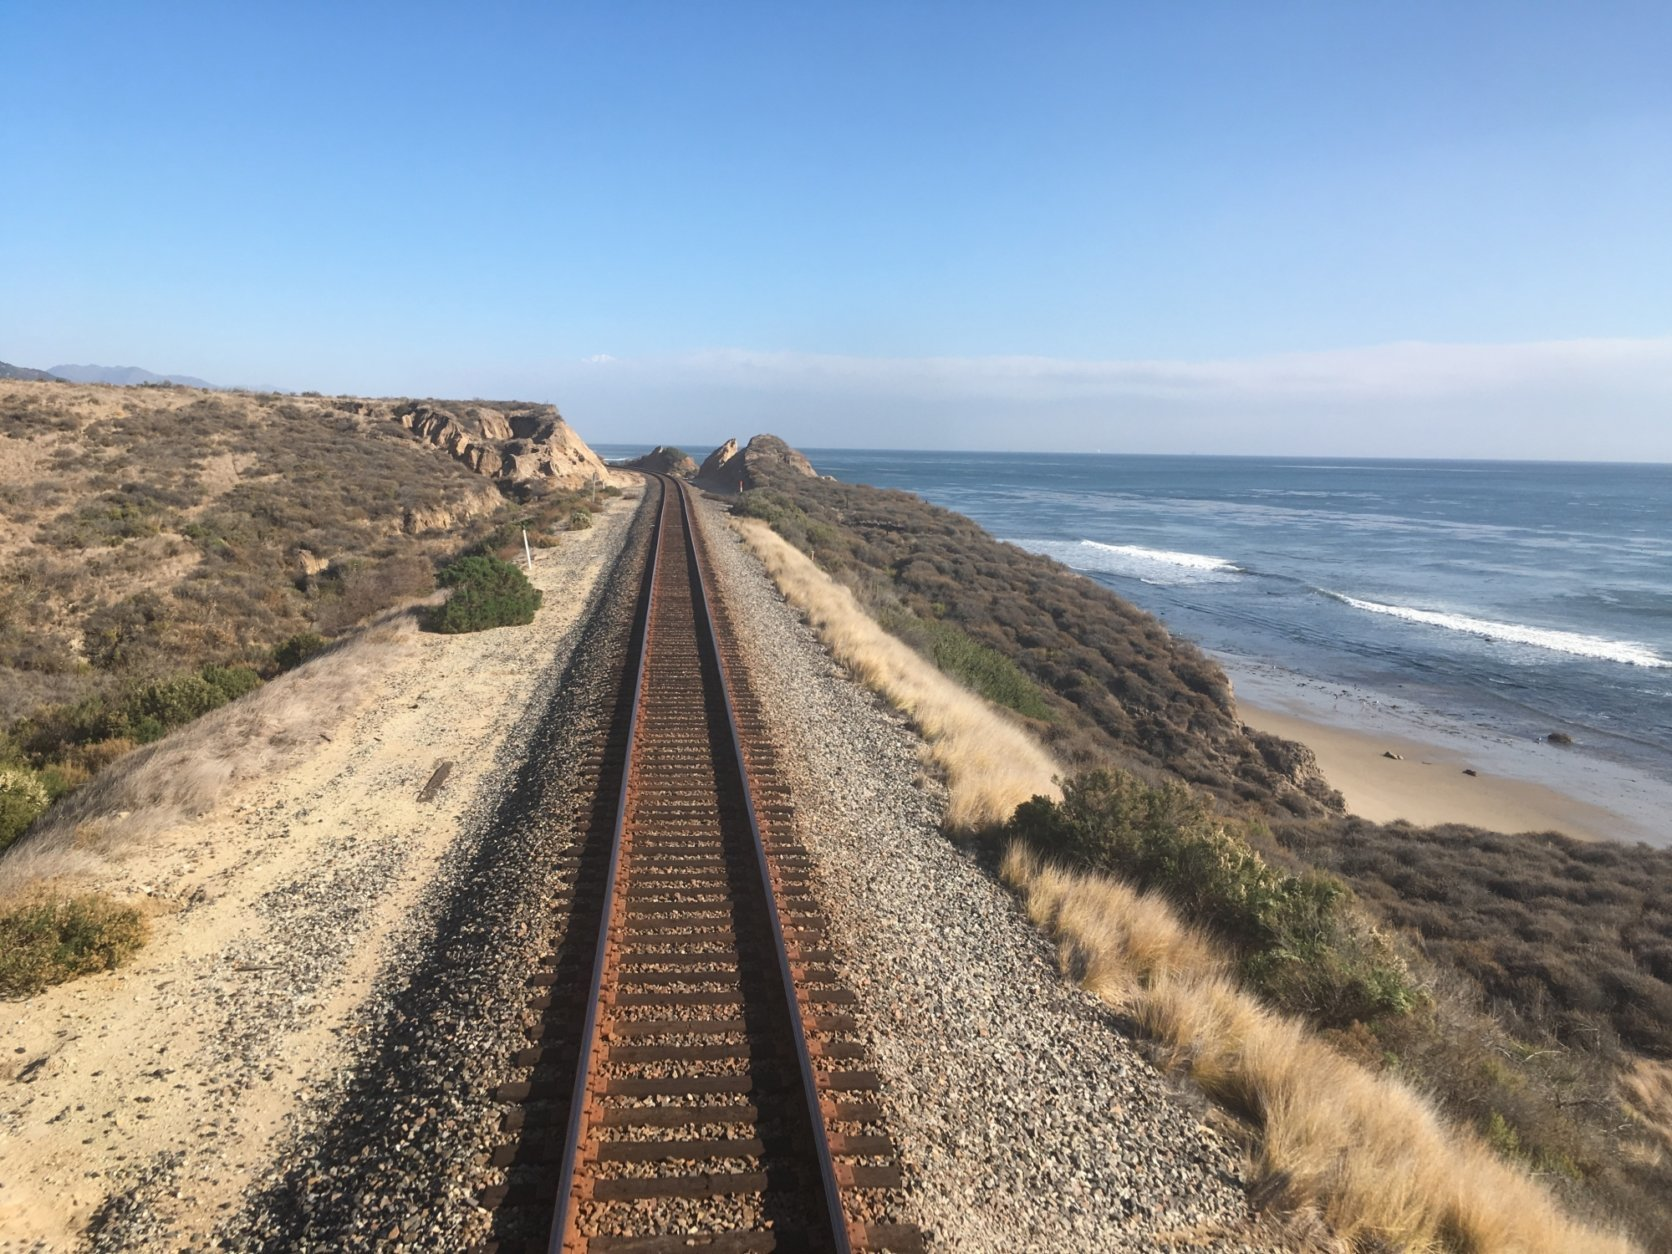 This Dec. 16, 2017 photo shows the northern California coastline from the window of Amtrak's Coast Starlight as the train journeys to Seattle from Los Angeles. Skip the hassles of traffic and airport security and hop on a coastal trek offering an old-fashioned, unplugged escape with scenic views of the Pacific Northwest. Seattle is the destination on Amtrak's 35-hour Coast Starlight sleeper train, but the relaxing journey is the main attraction. (AP Photo/Nicole Evatt)